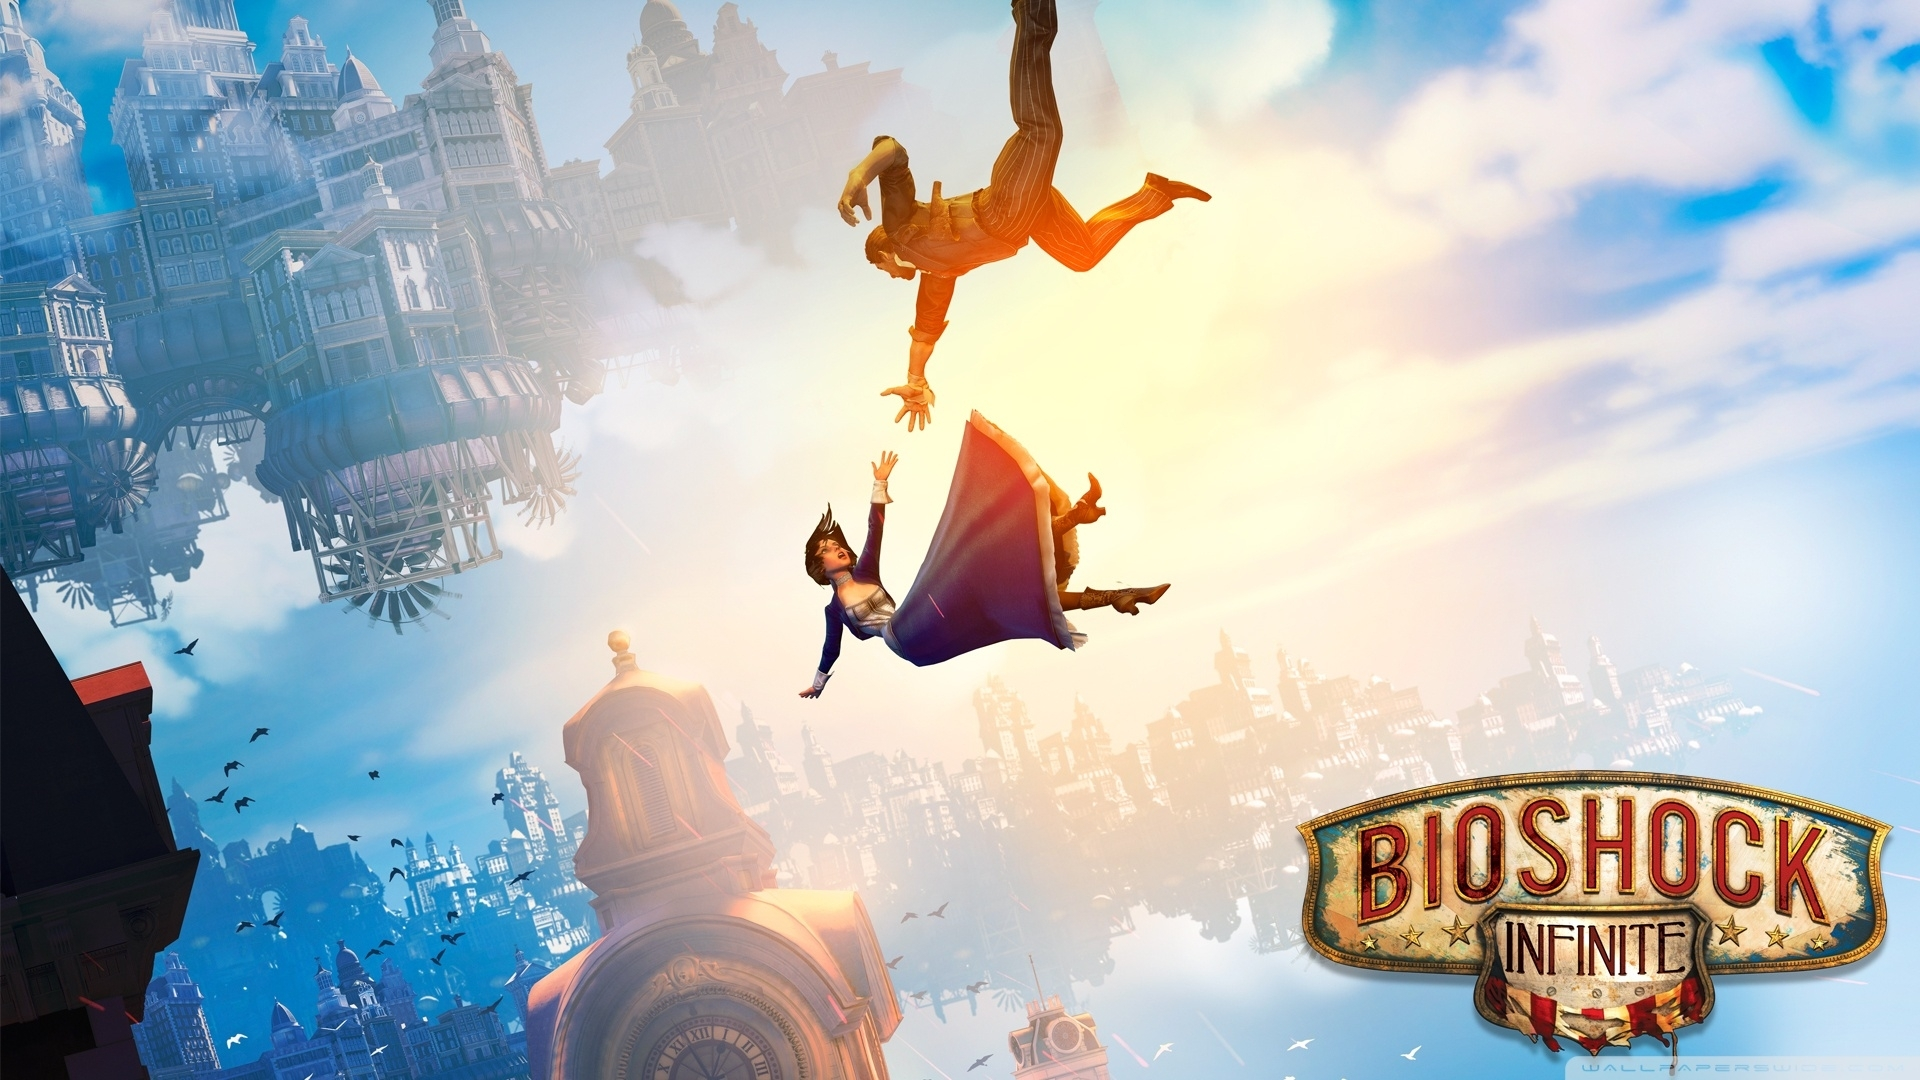 10 Best Bioshock Infinite Wallpaper Falling FULL HD 1920×1080 For PC Background